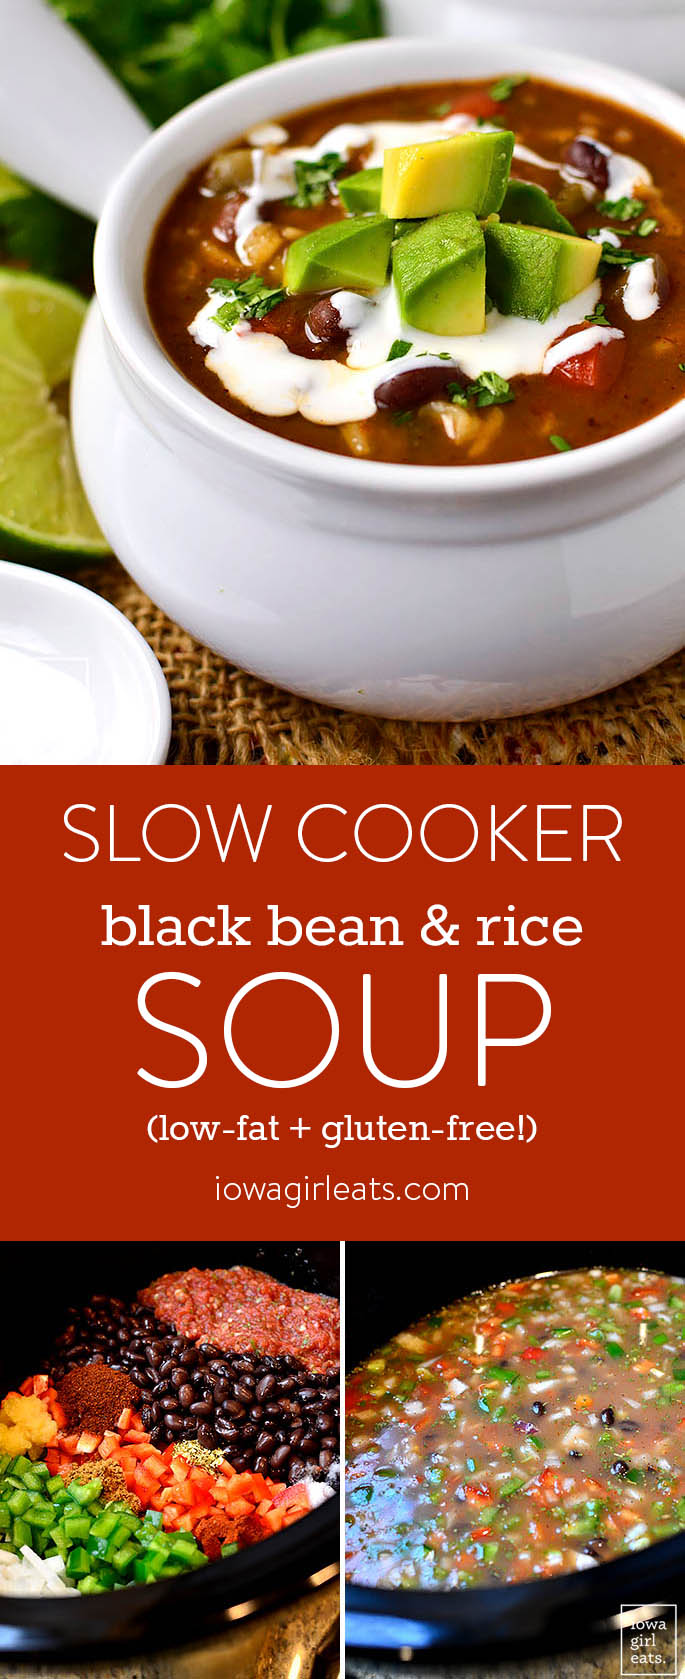 Slow Cooker Black Bean and Rice Soup is a filling, healthy, and heartygluten-free slow cooker recipe that's easy on the wallet, and waistline! | iowagirleats.com